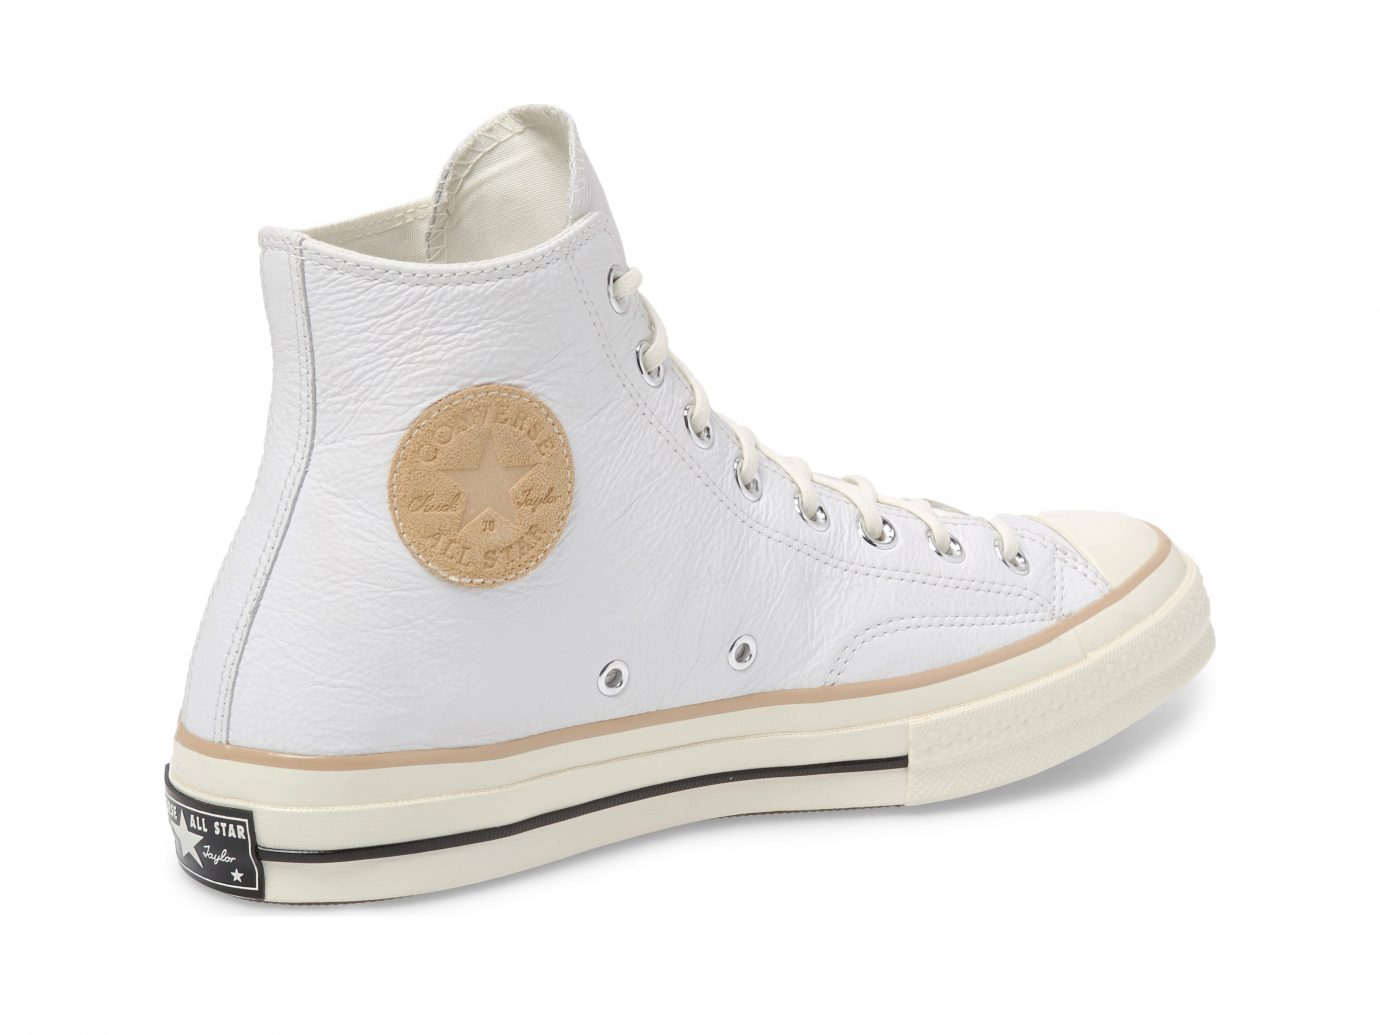 Converse Chuck 70 Boot Leather High Top Sneaker